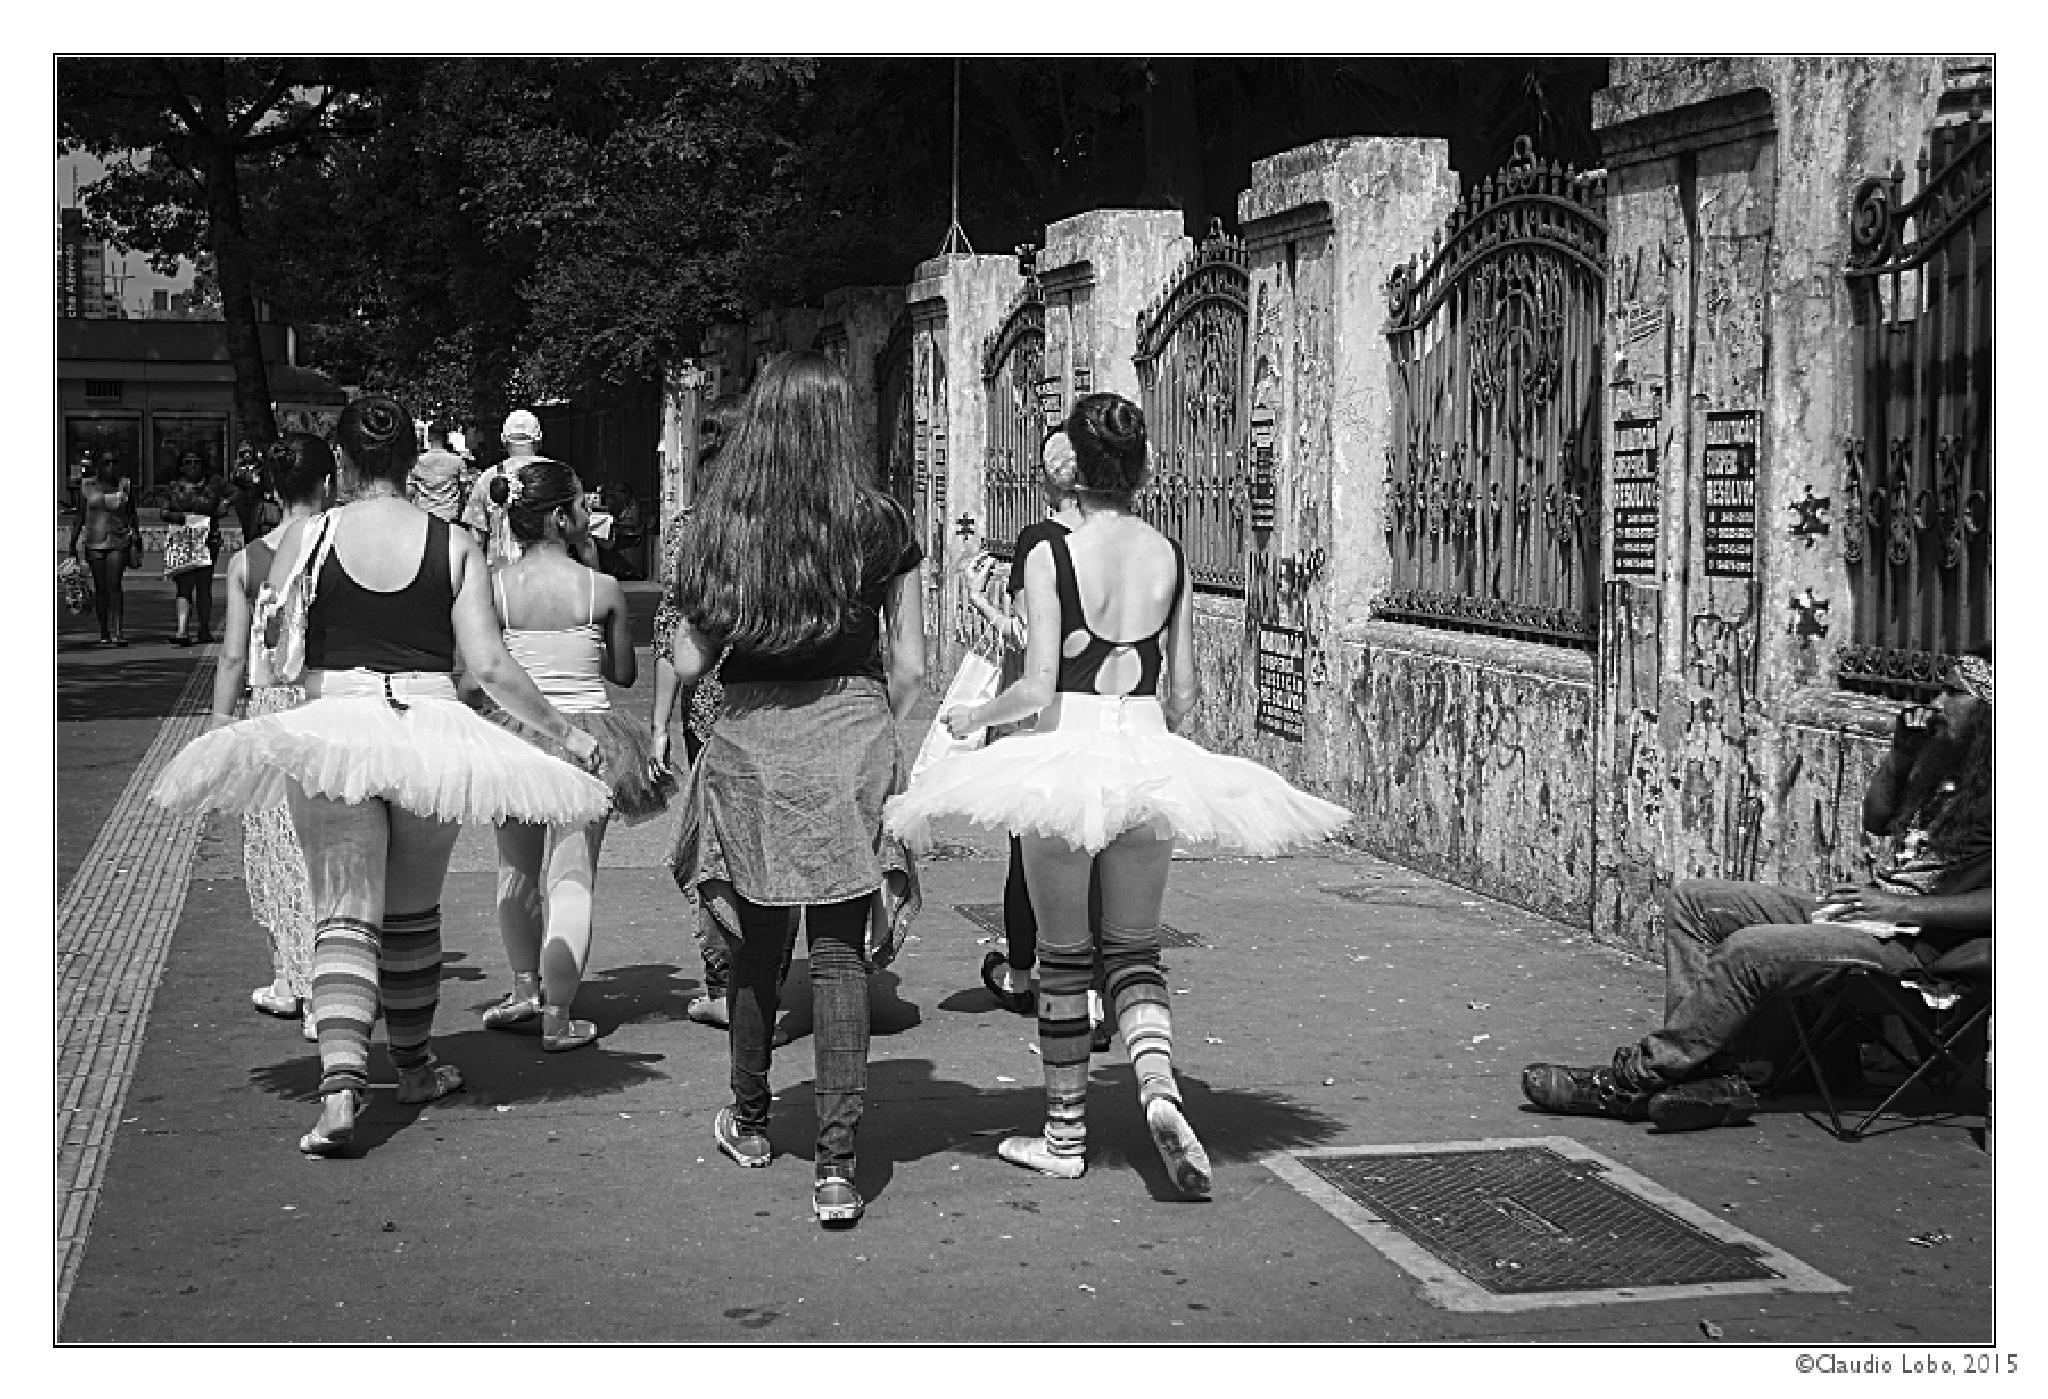 Ballet on the street and people contrast by Claudio Lobo